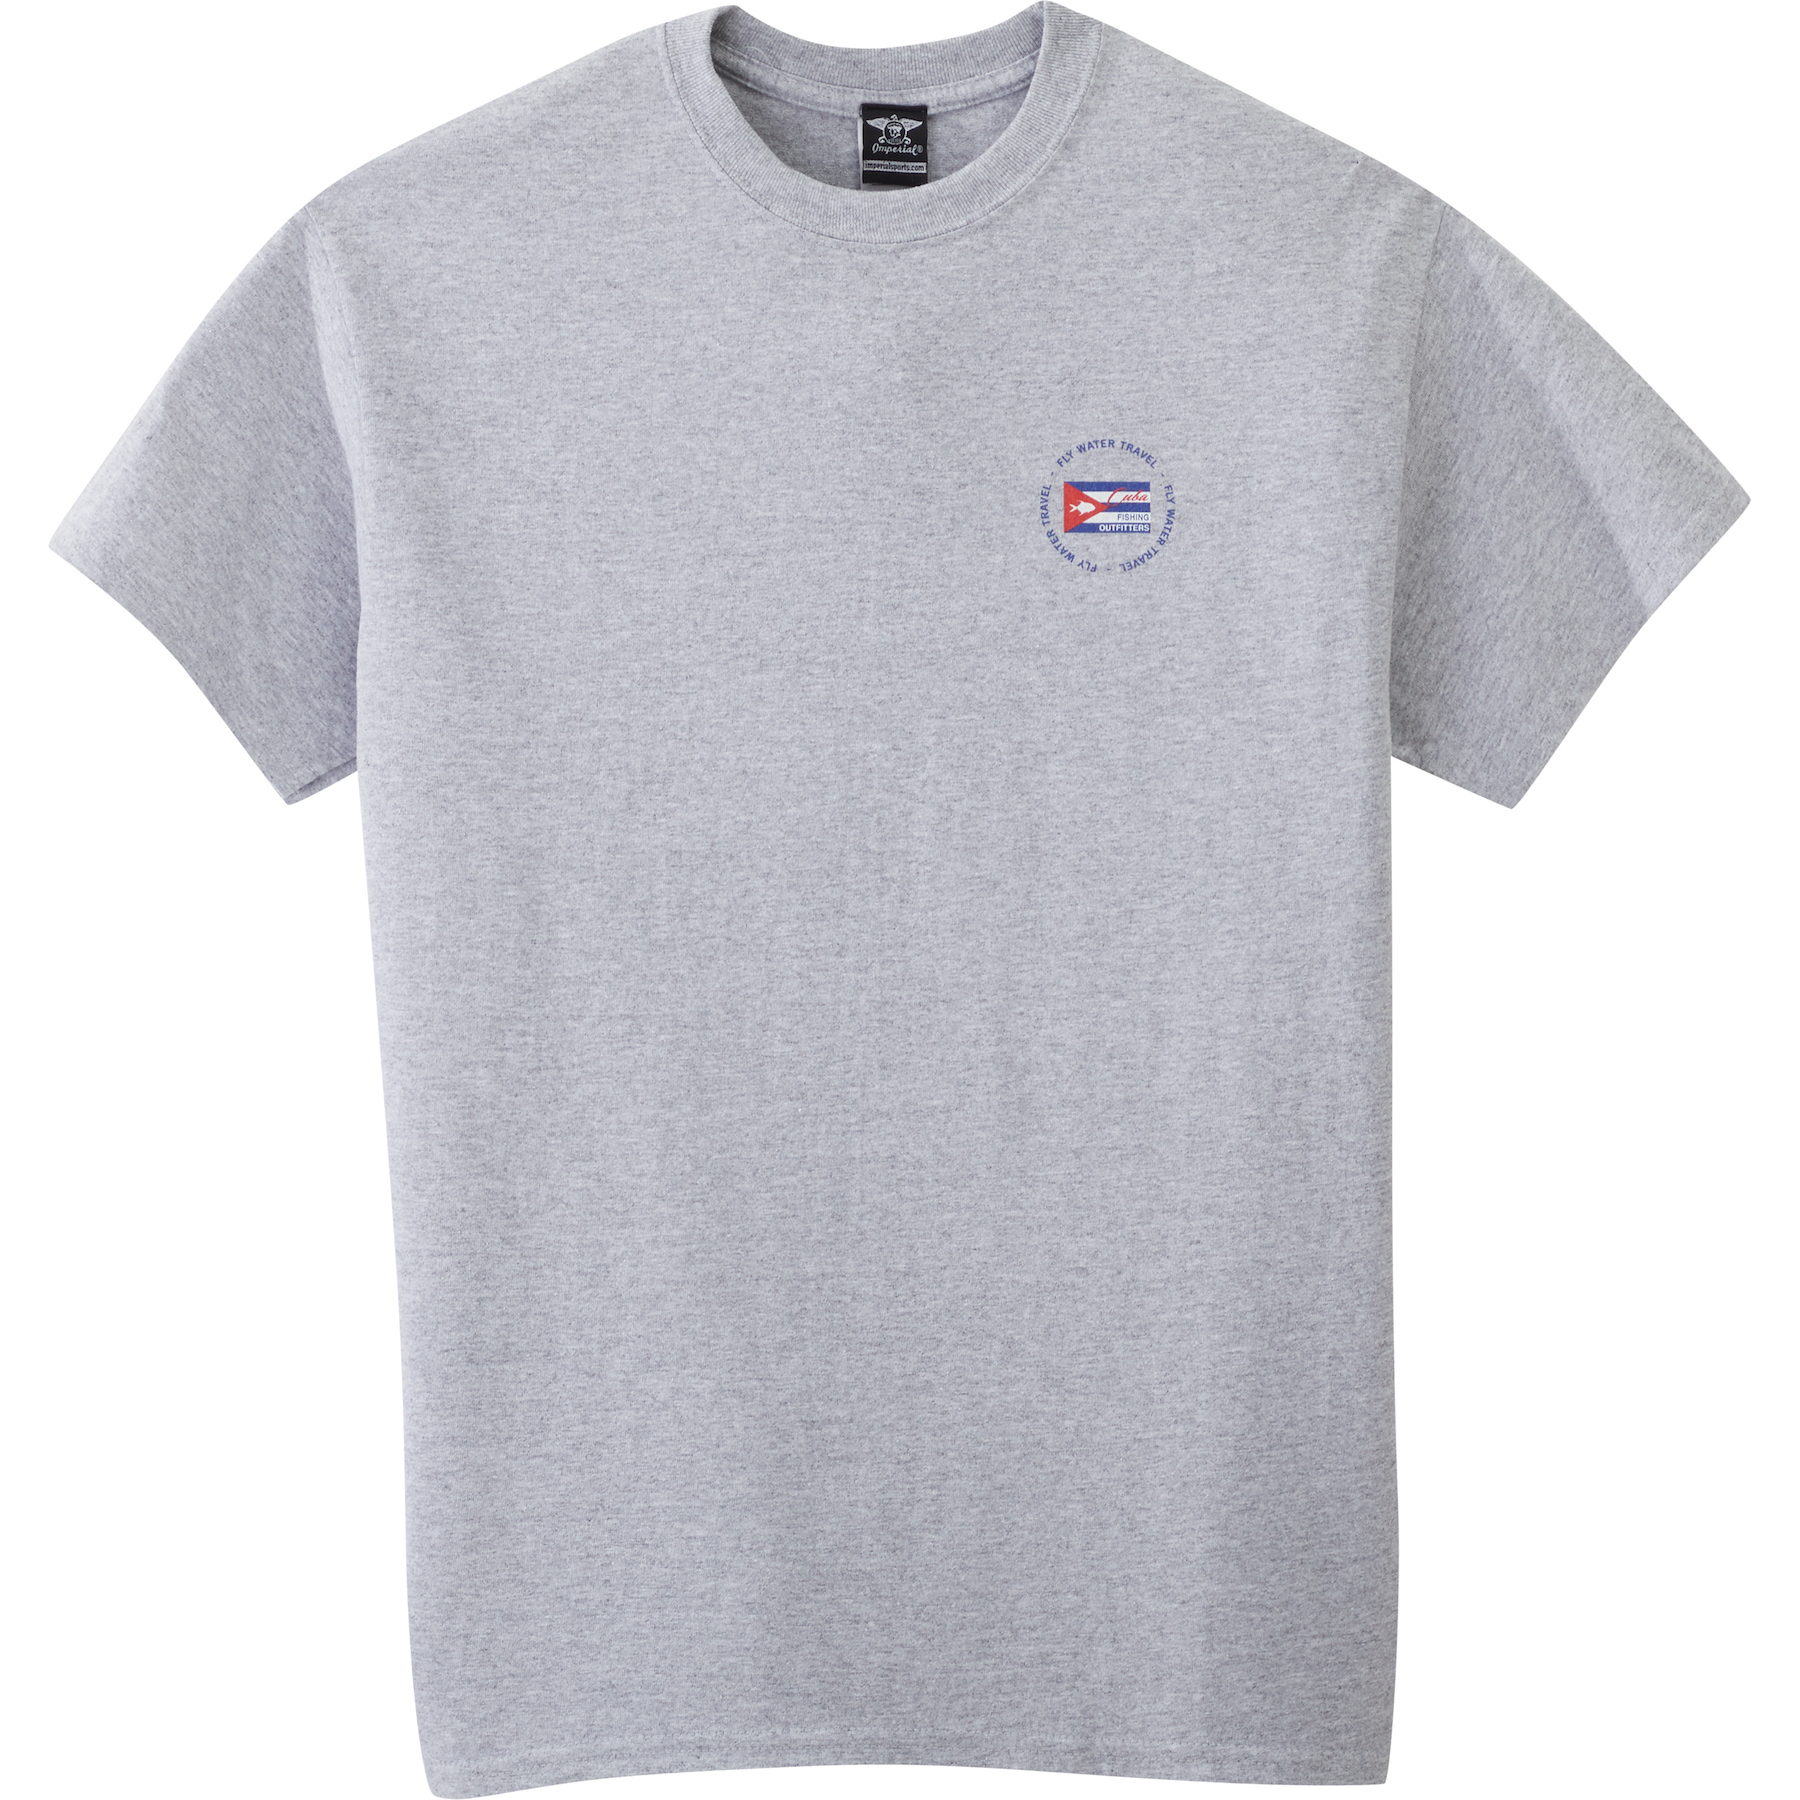 CubaTshirt-Grey_Front copy.jpg